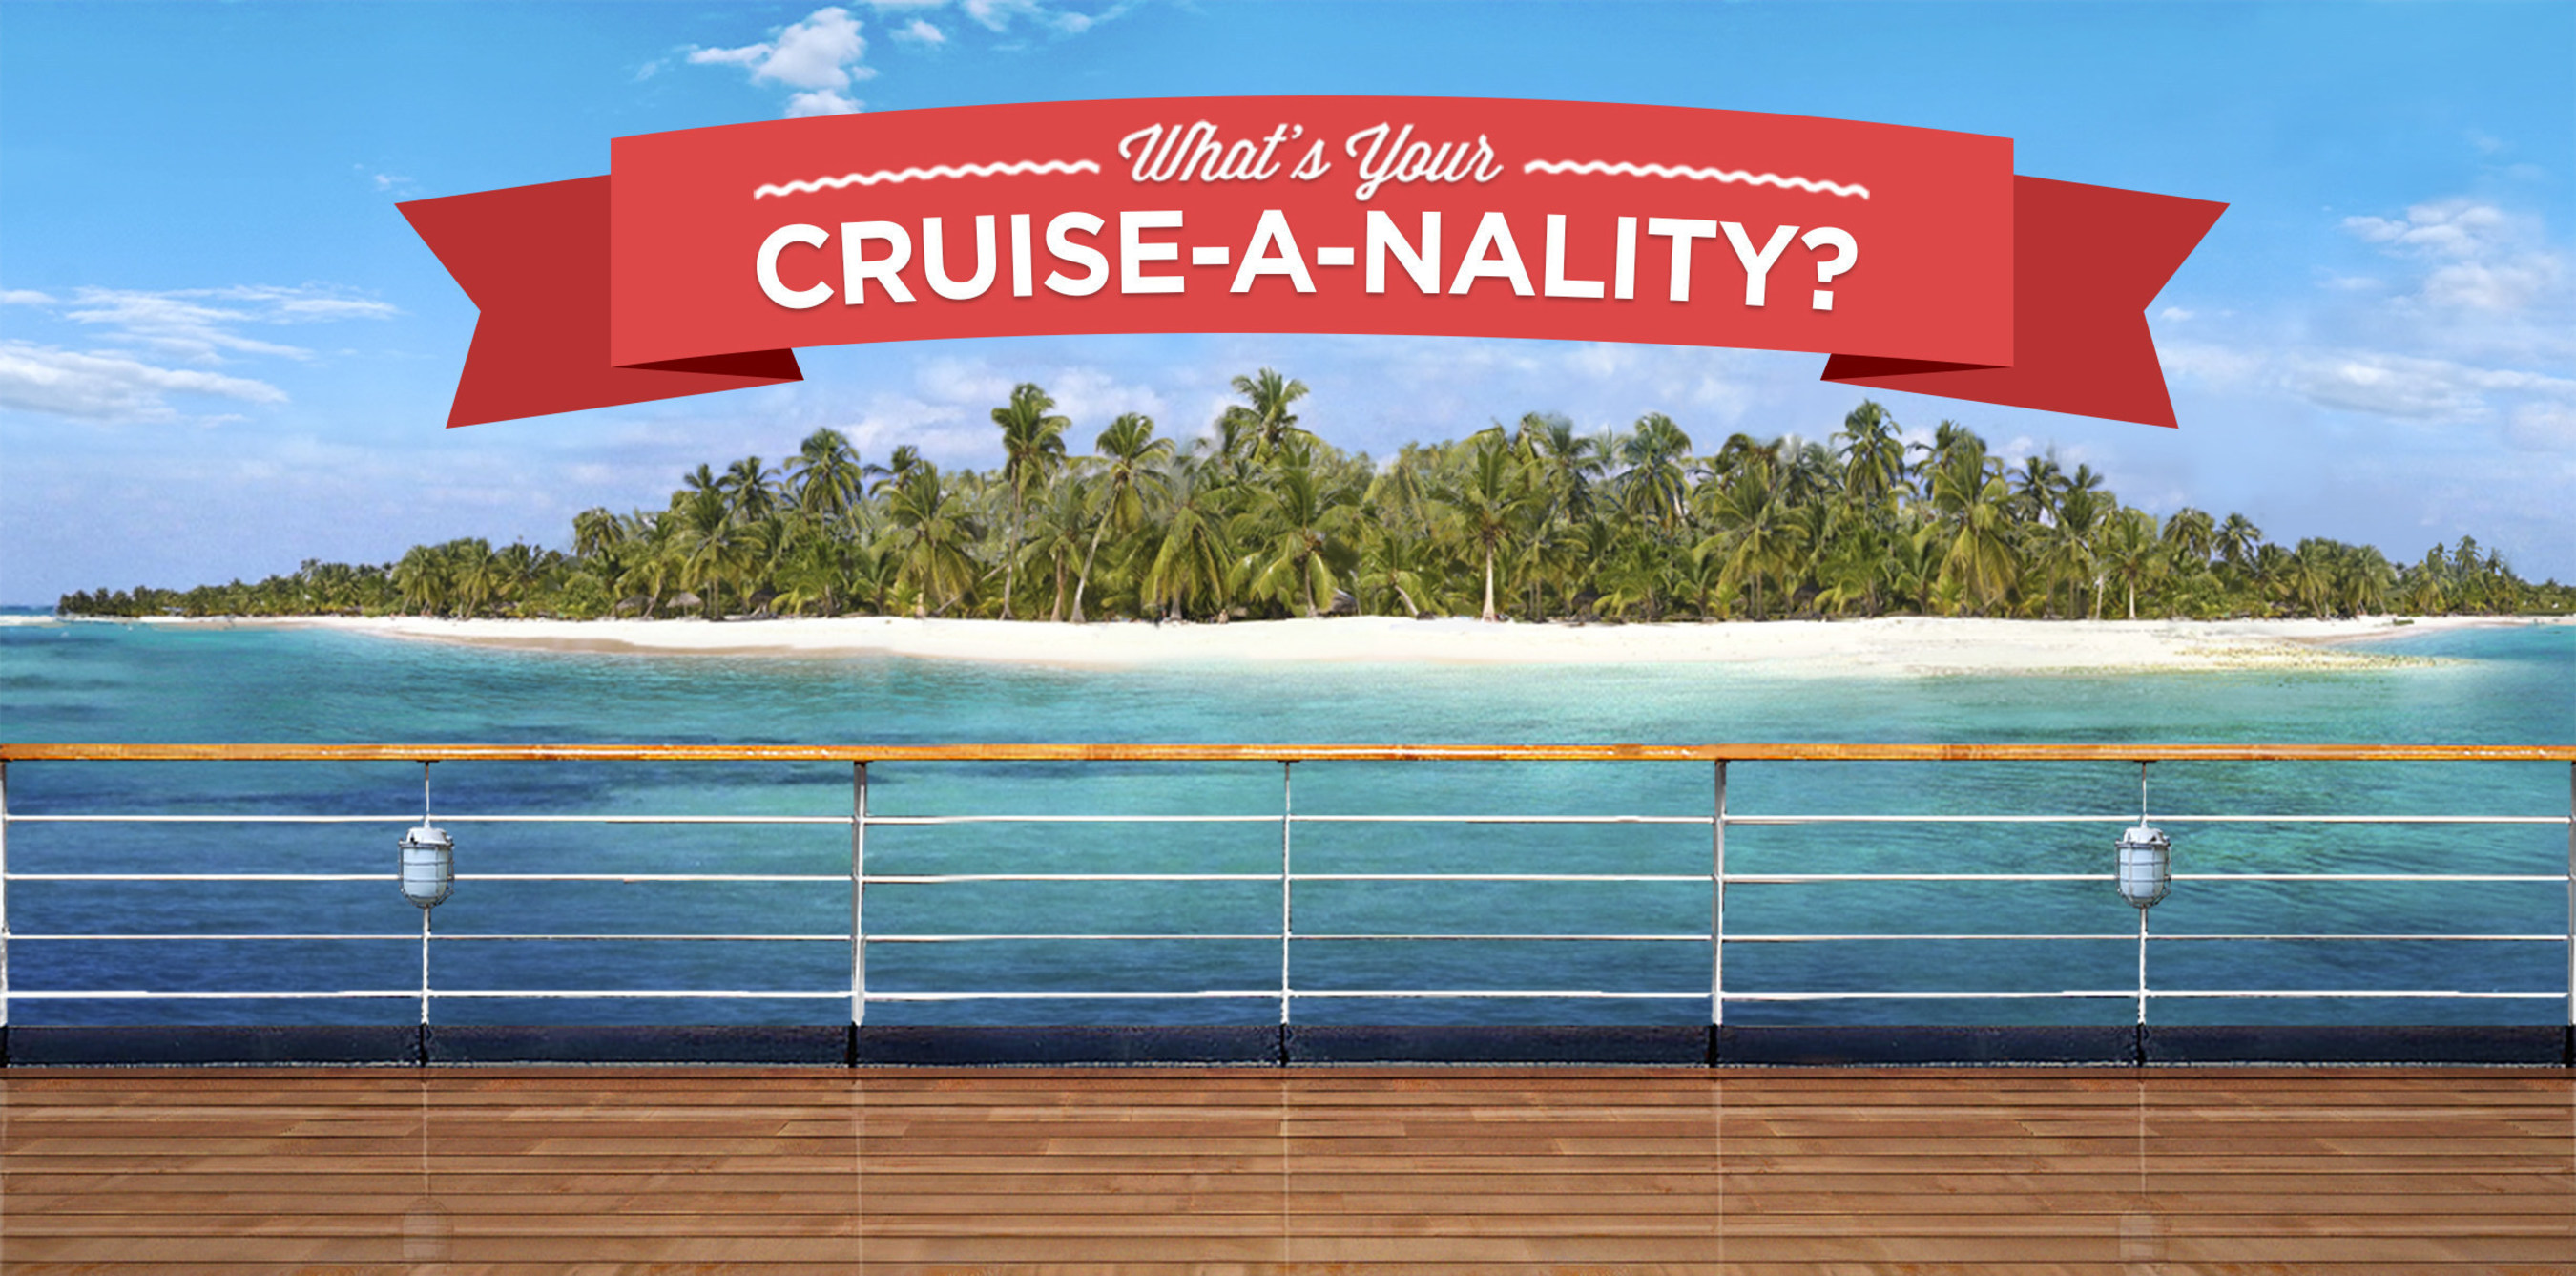 One aspect of Carnival Corporation's WorldsLeadingCruiseLines.com website allows vacationers to find their ...